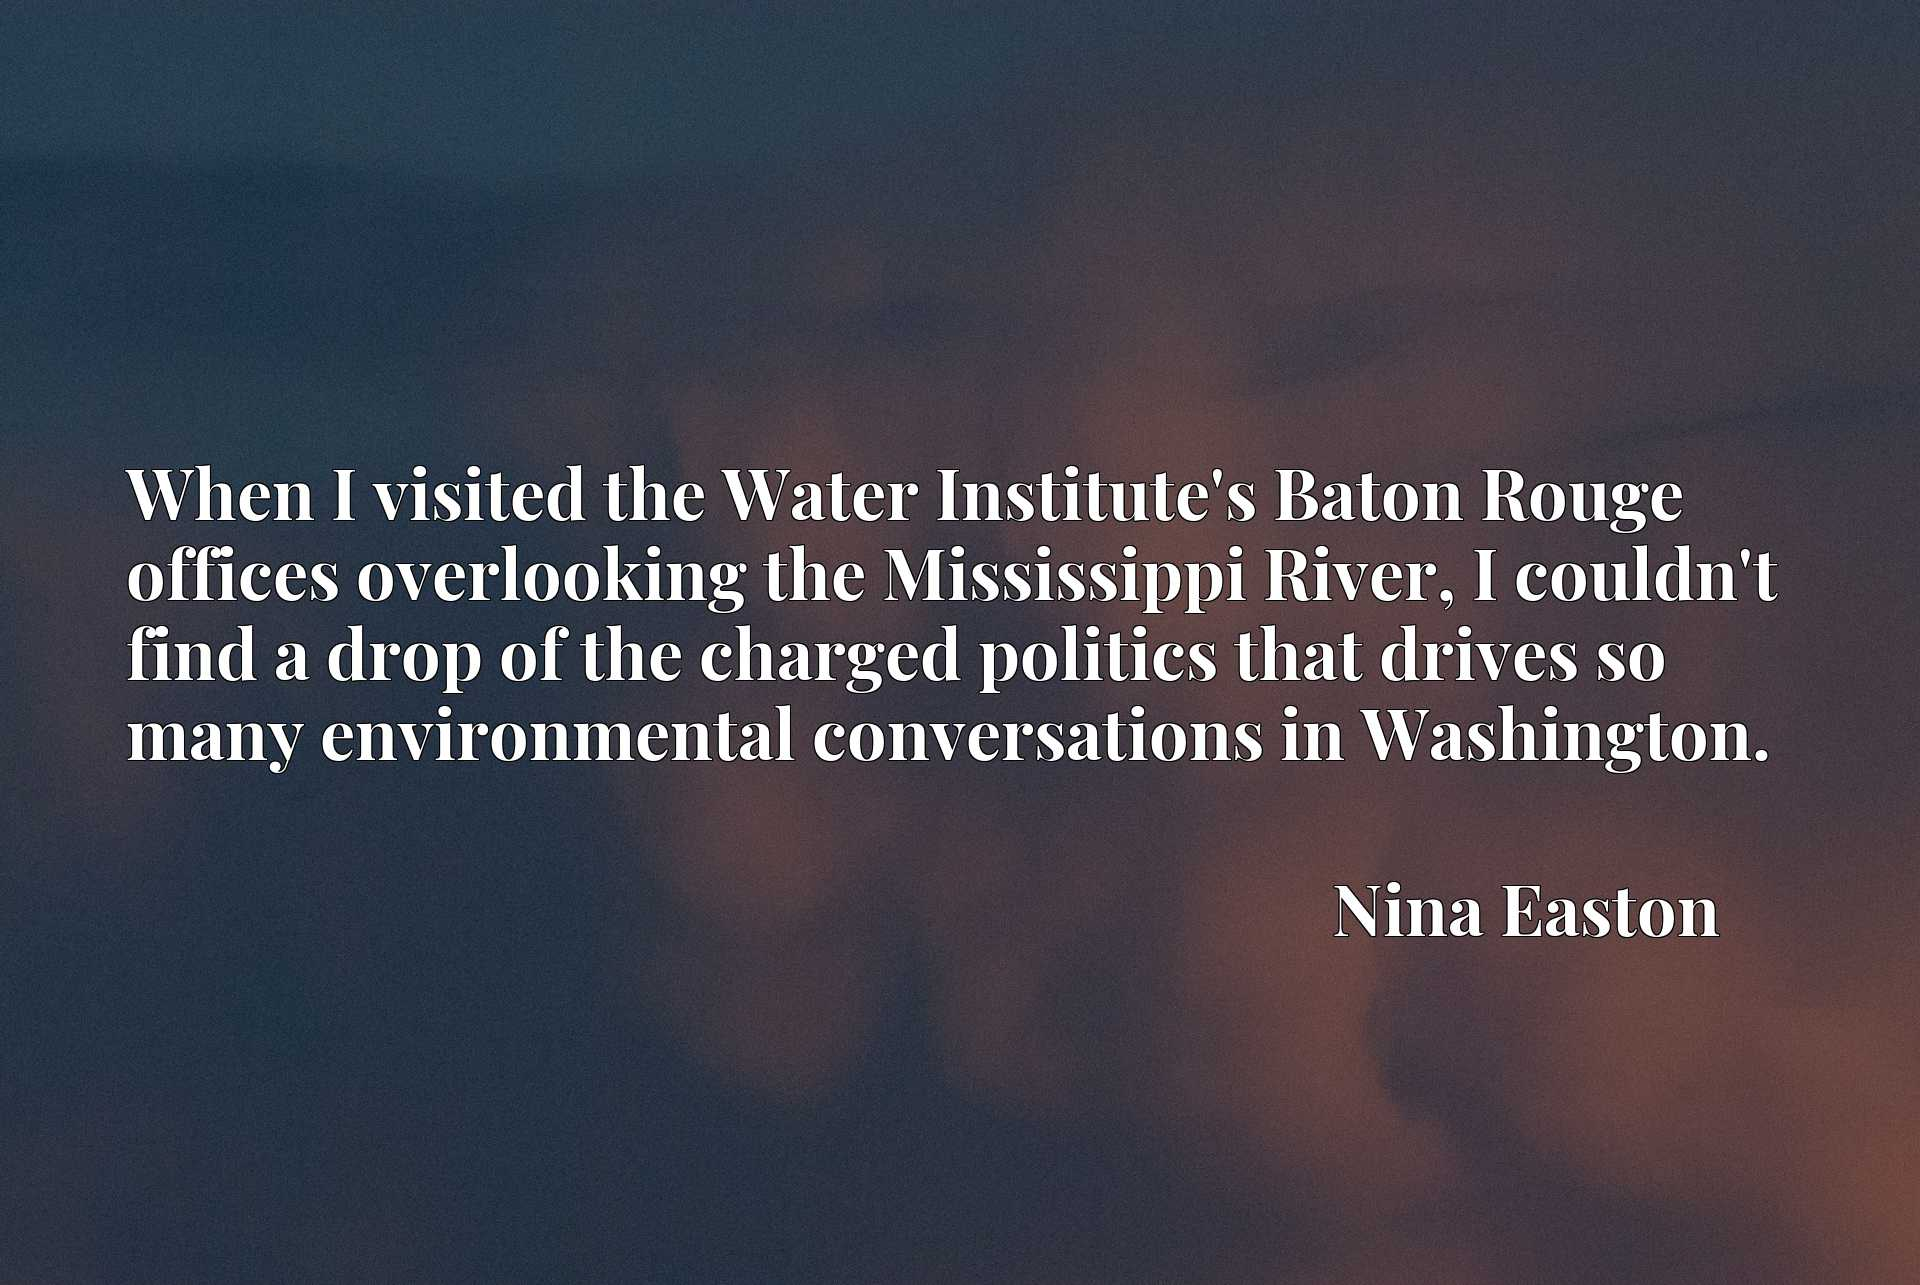 When I visited the Water Institute's Baton Rouge offices overlooking the Mississippi River, I couldn't find a drop of the charged politics that drives so many environmental conversations in Washington.